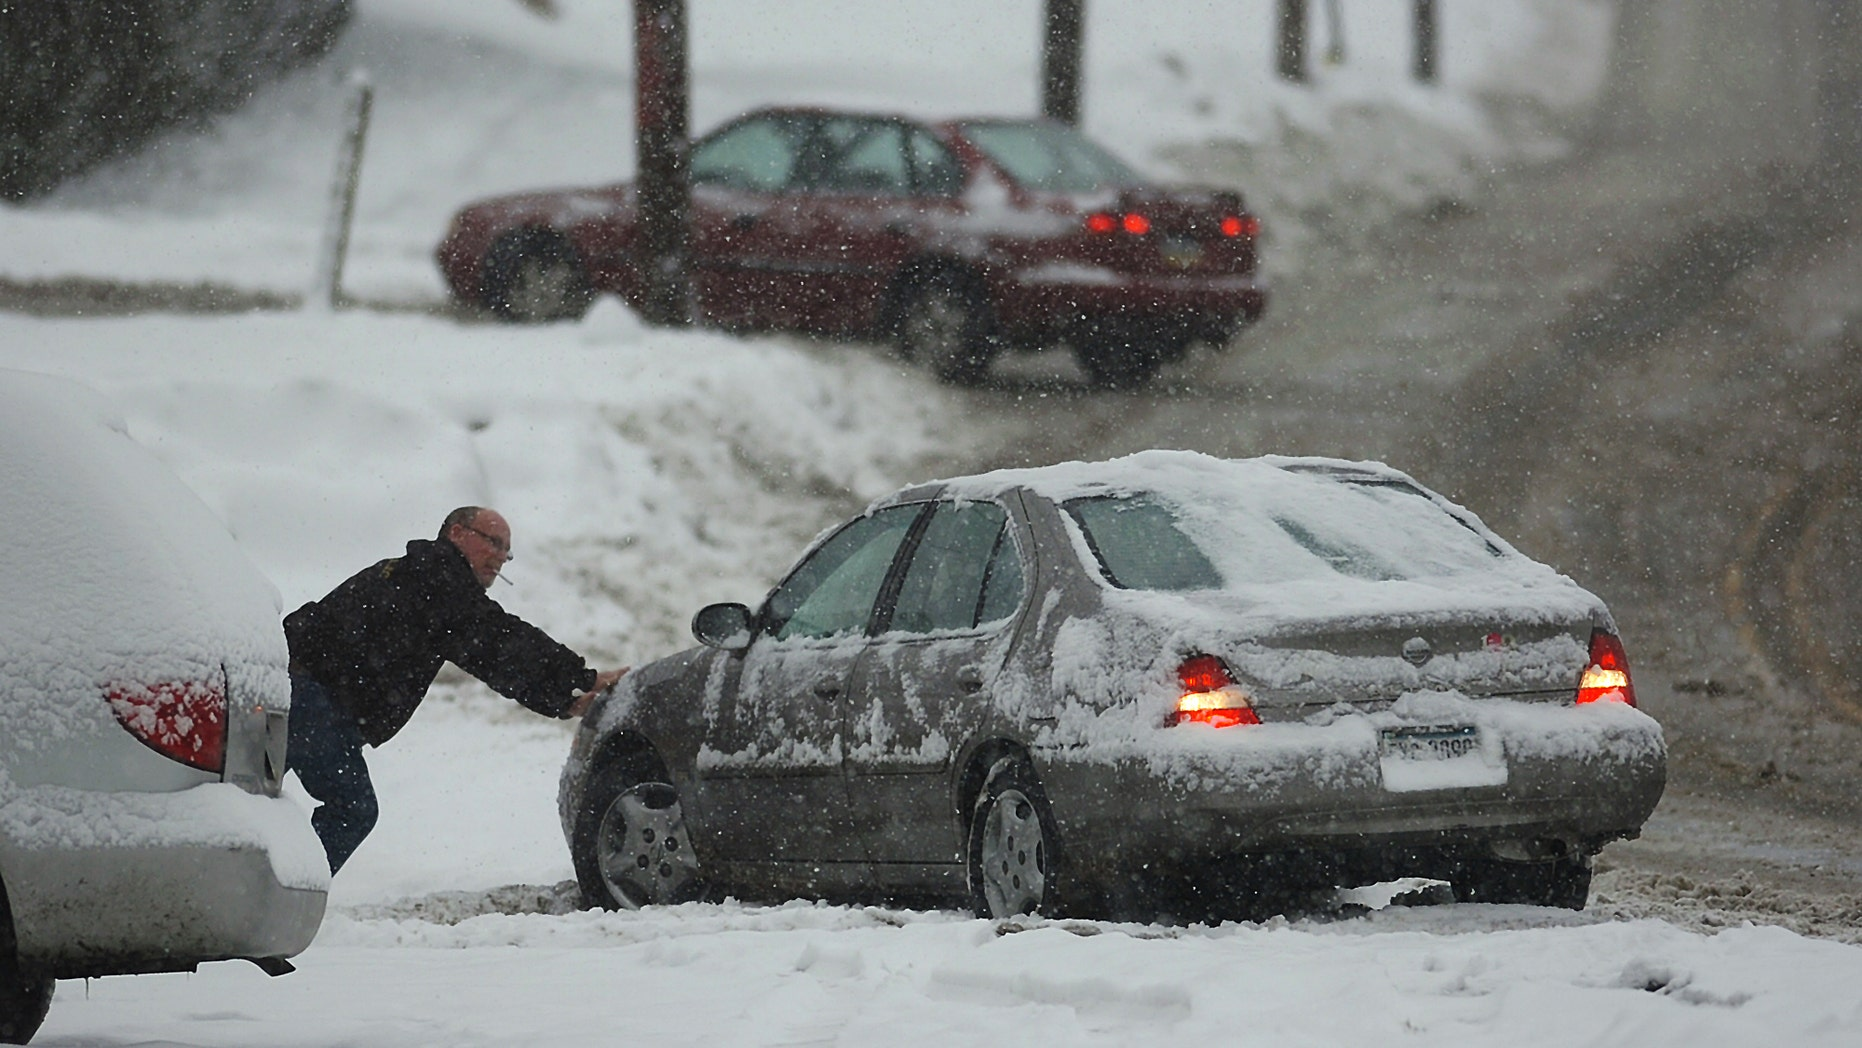 A resident helps out a motorist push his car out of the snow on an icy West Lackawanna Avenue in Blakely,  Pa. on Saturday, Dec. 29, 2012. Snow from a mild but widespread winter storm began falling Saturday over most of the Northeast and the upper Ohio River Valley, the second in less than a week for the regions. (AP Photo/Scranton Times & Tribune, Butch Comegys)  WILKES BARRE TIMES-LEADER OUT; MANDATORY CREDIT